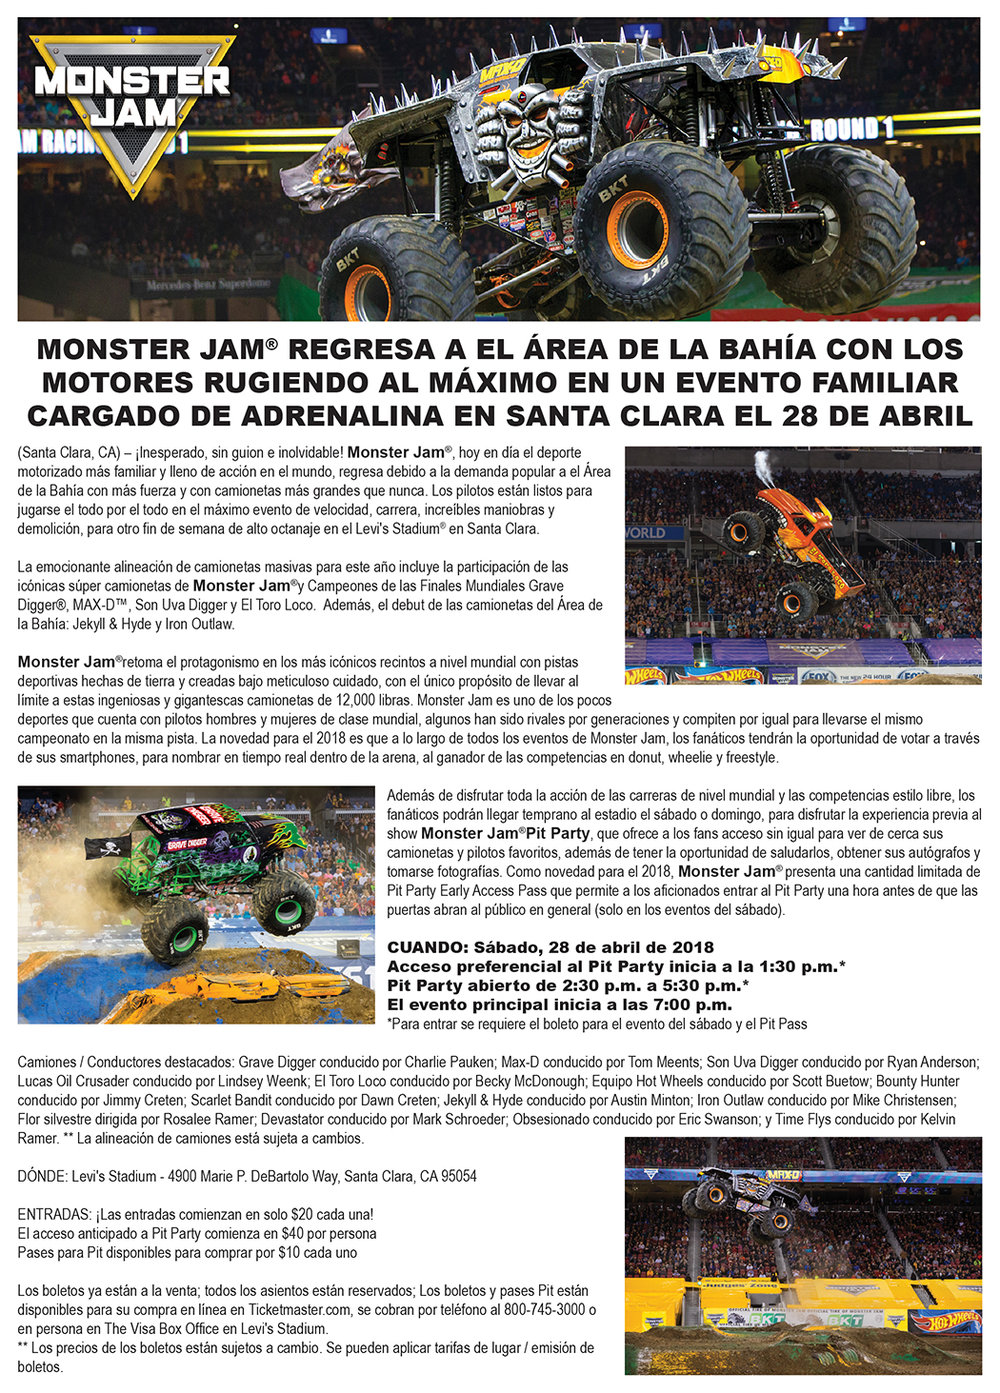 Monster Jam 1 Pag - ABRIL 2018-01.jpg